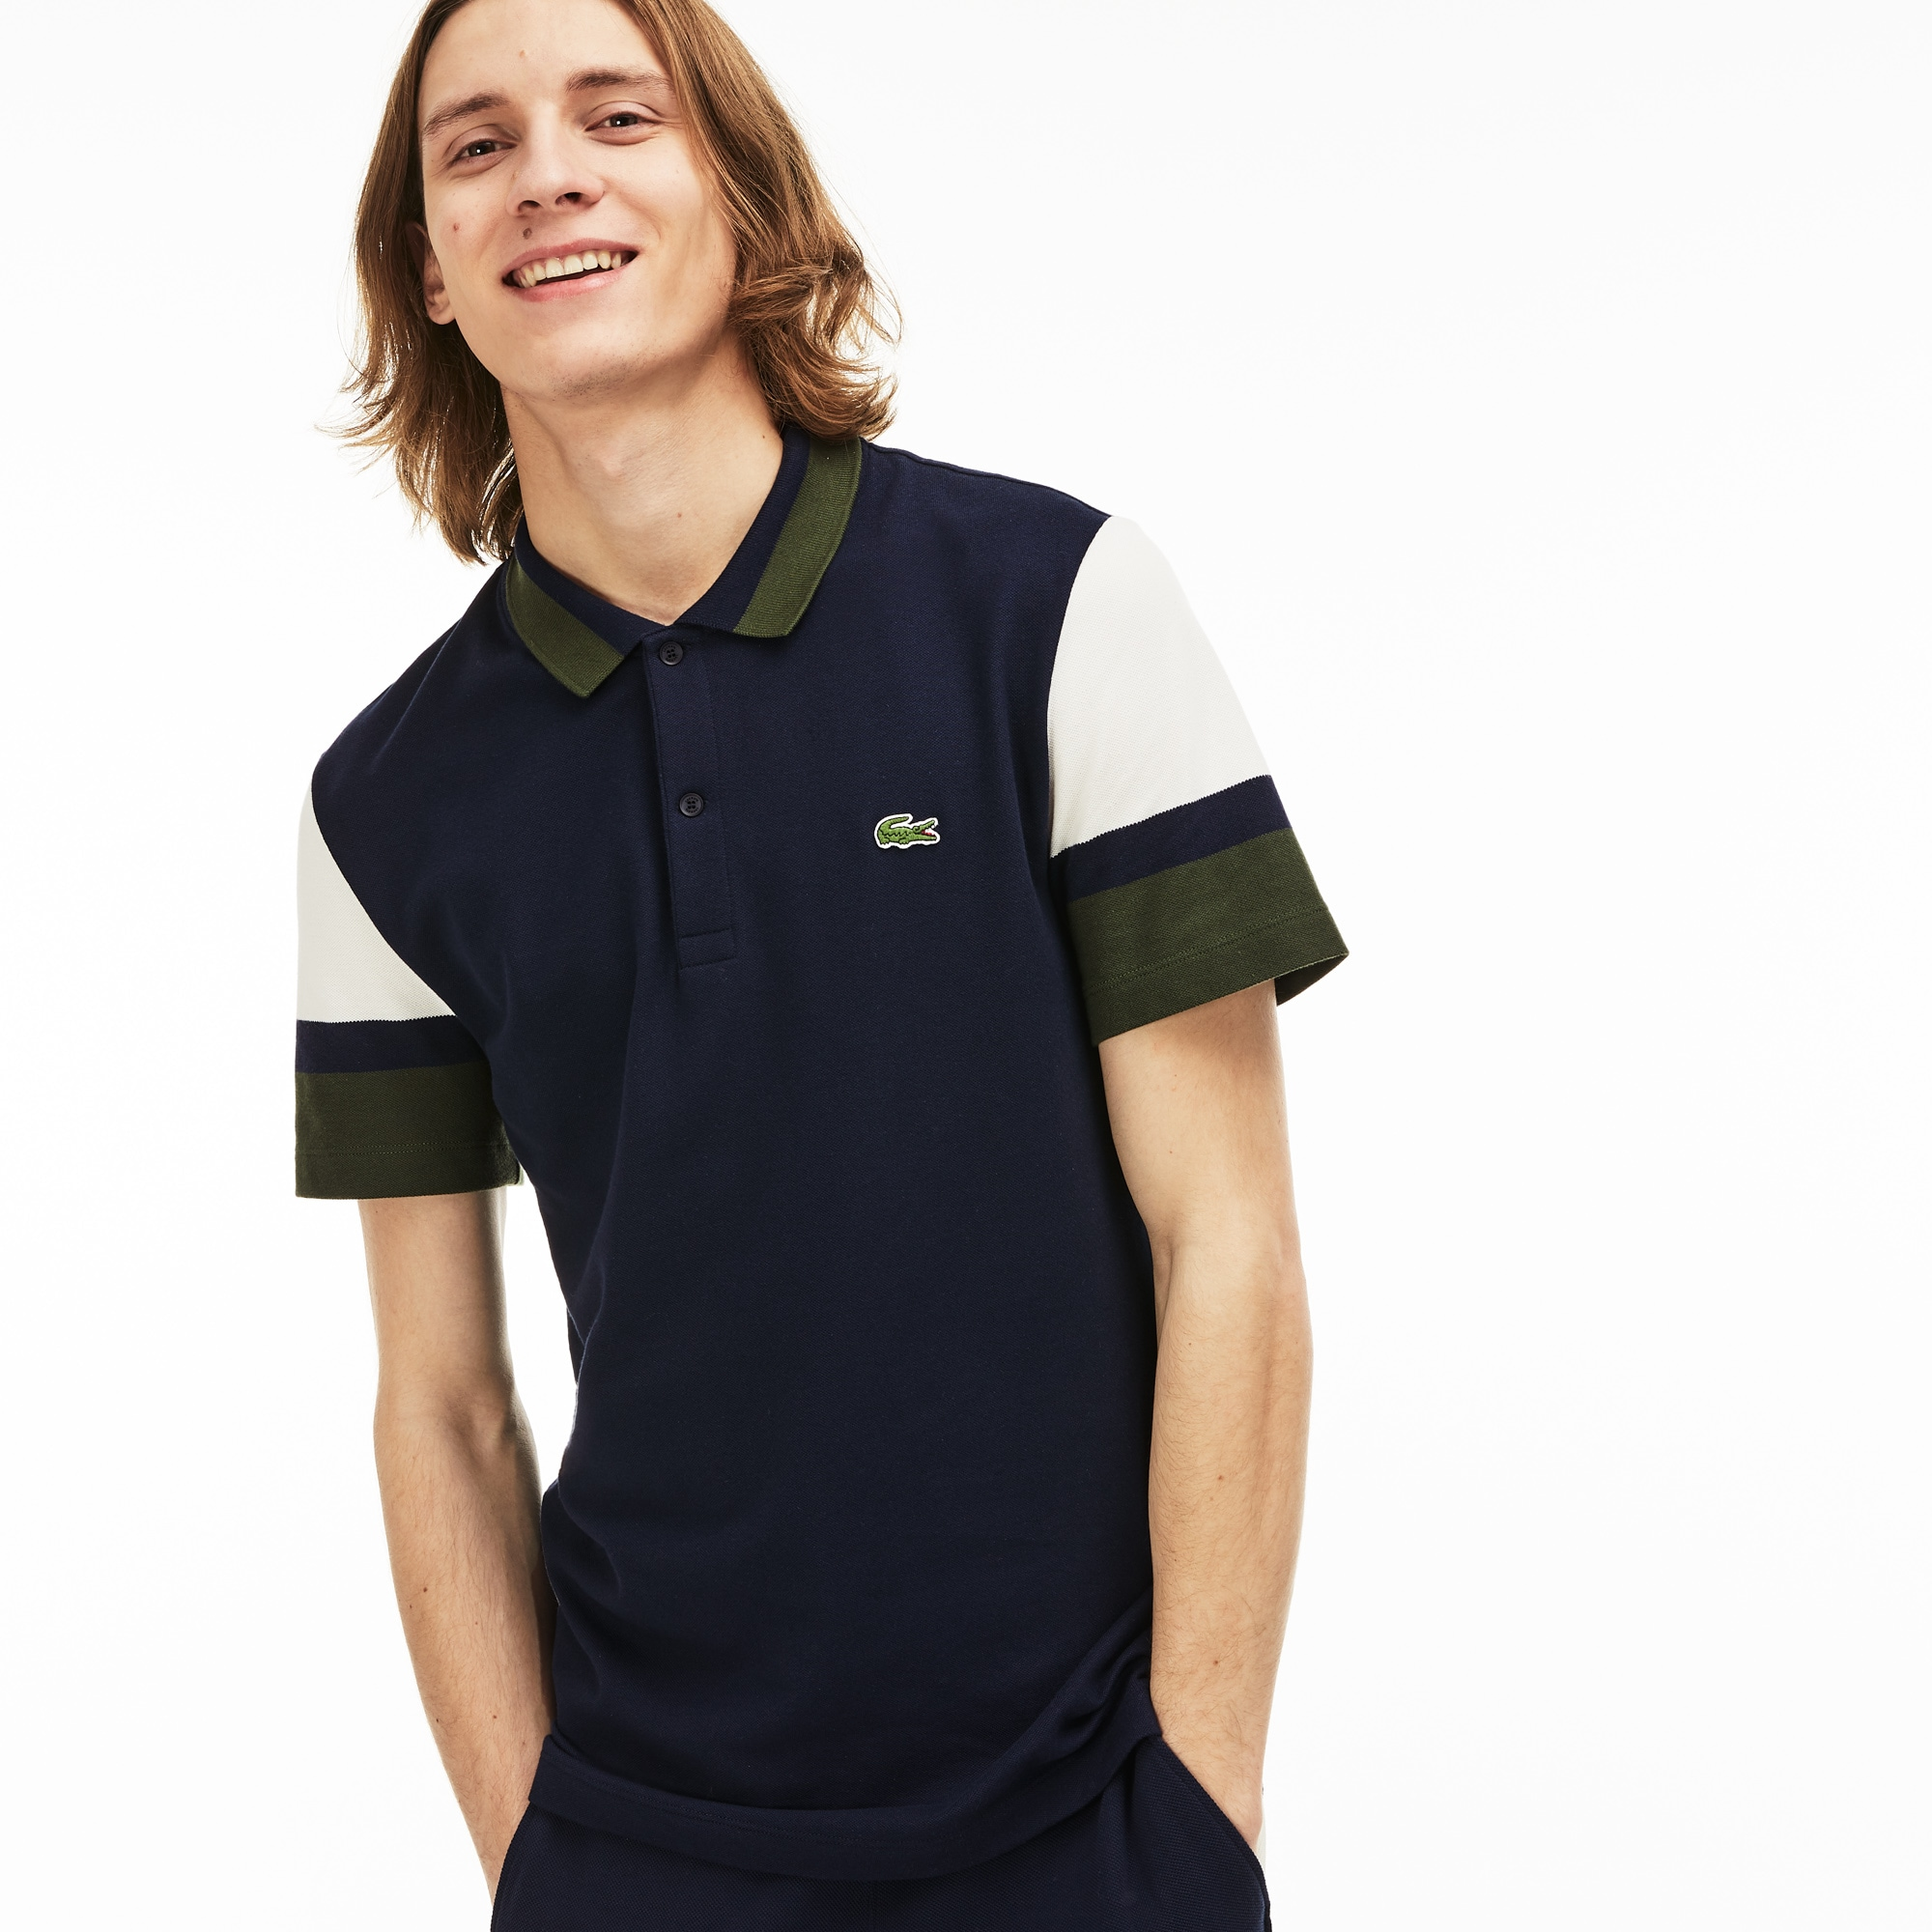 adf46c30c Men s Lacoste Slim Fit Colourblock Stretch Pima Piqué Polo Shirt ...